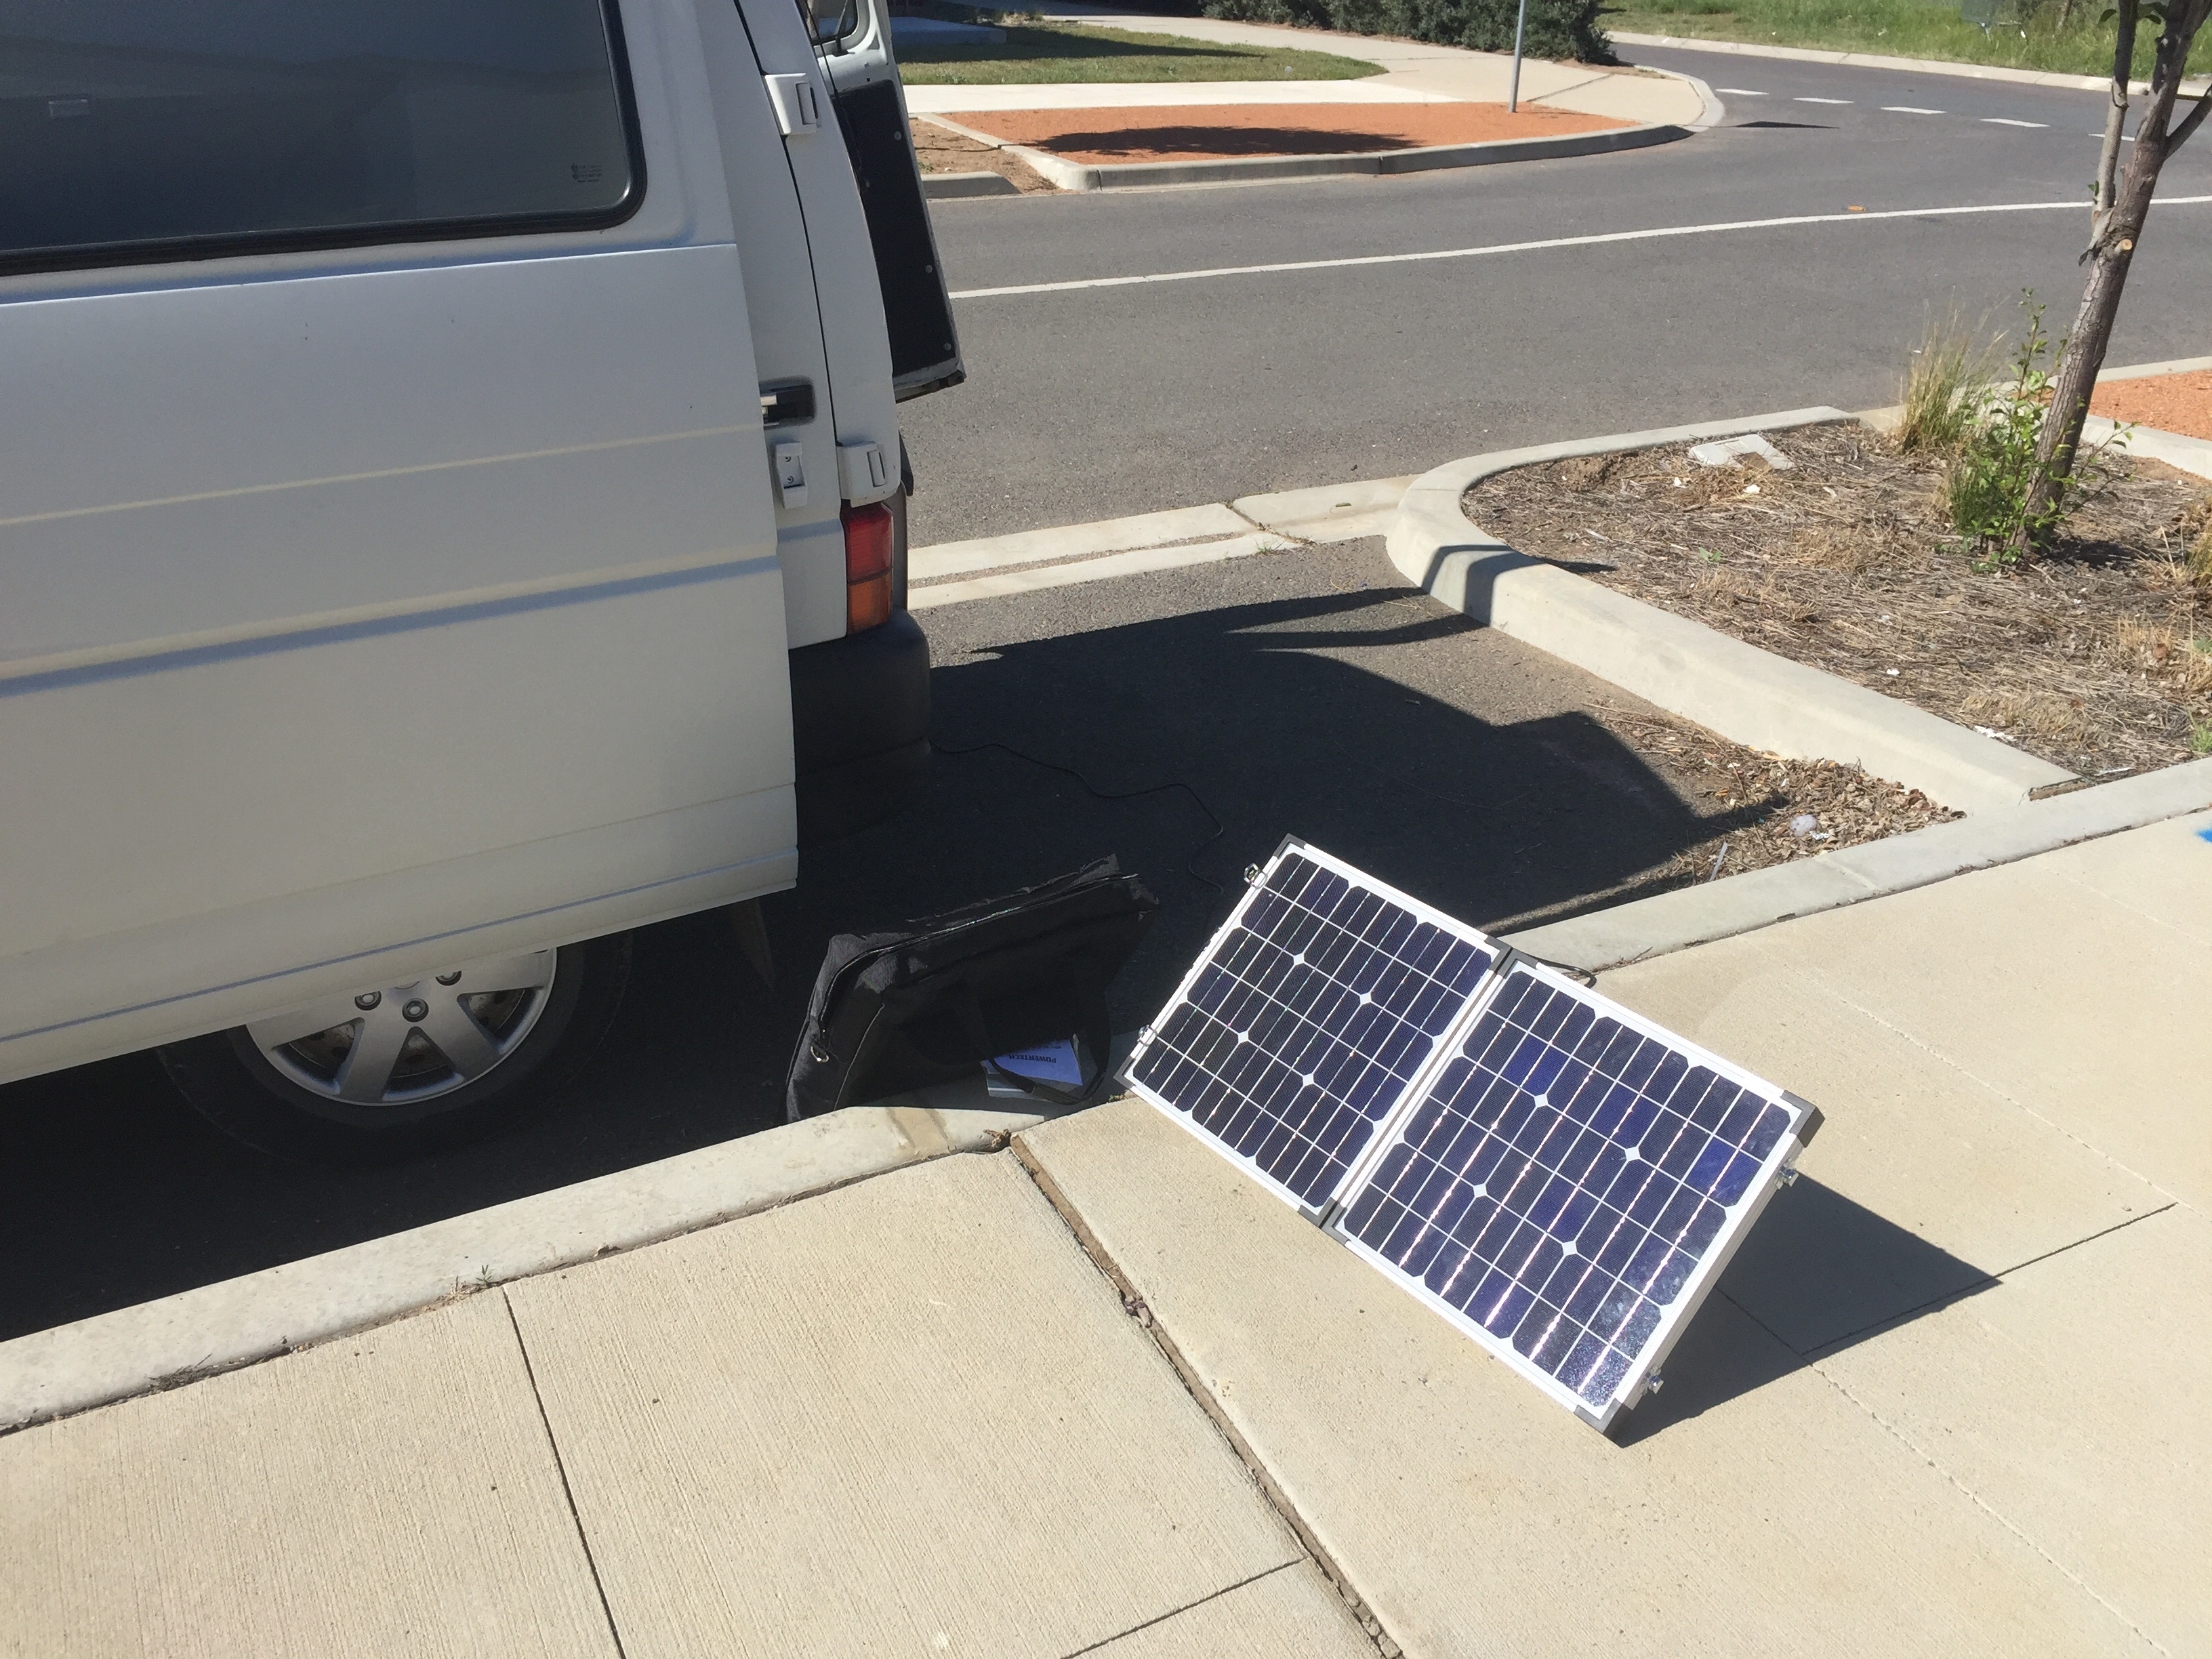 External panels (40w) allow the van to be parked in the shade